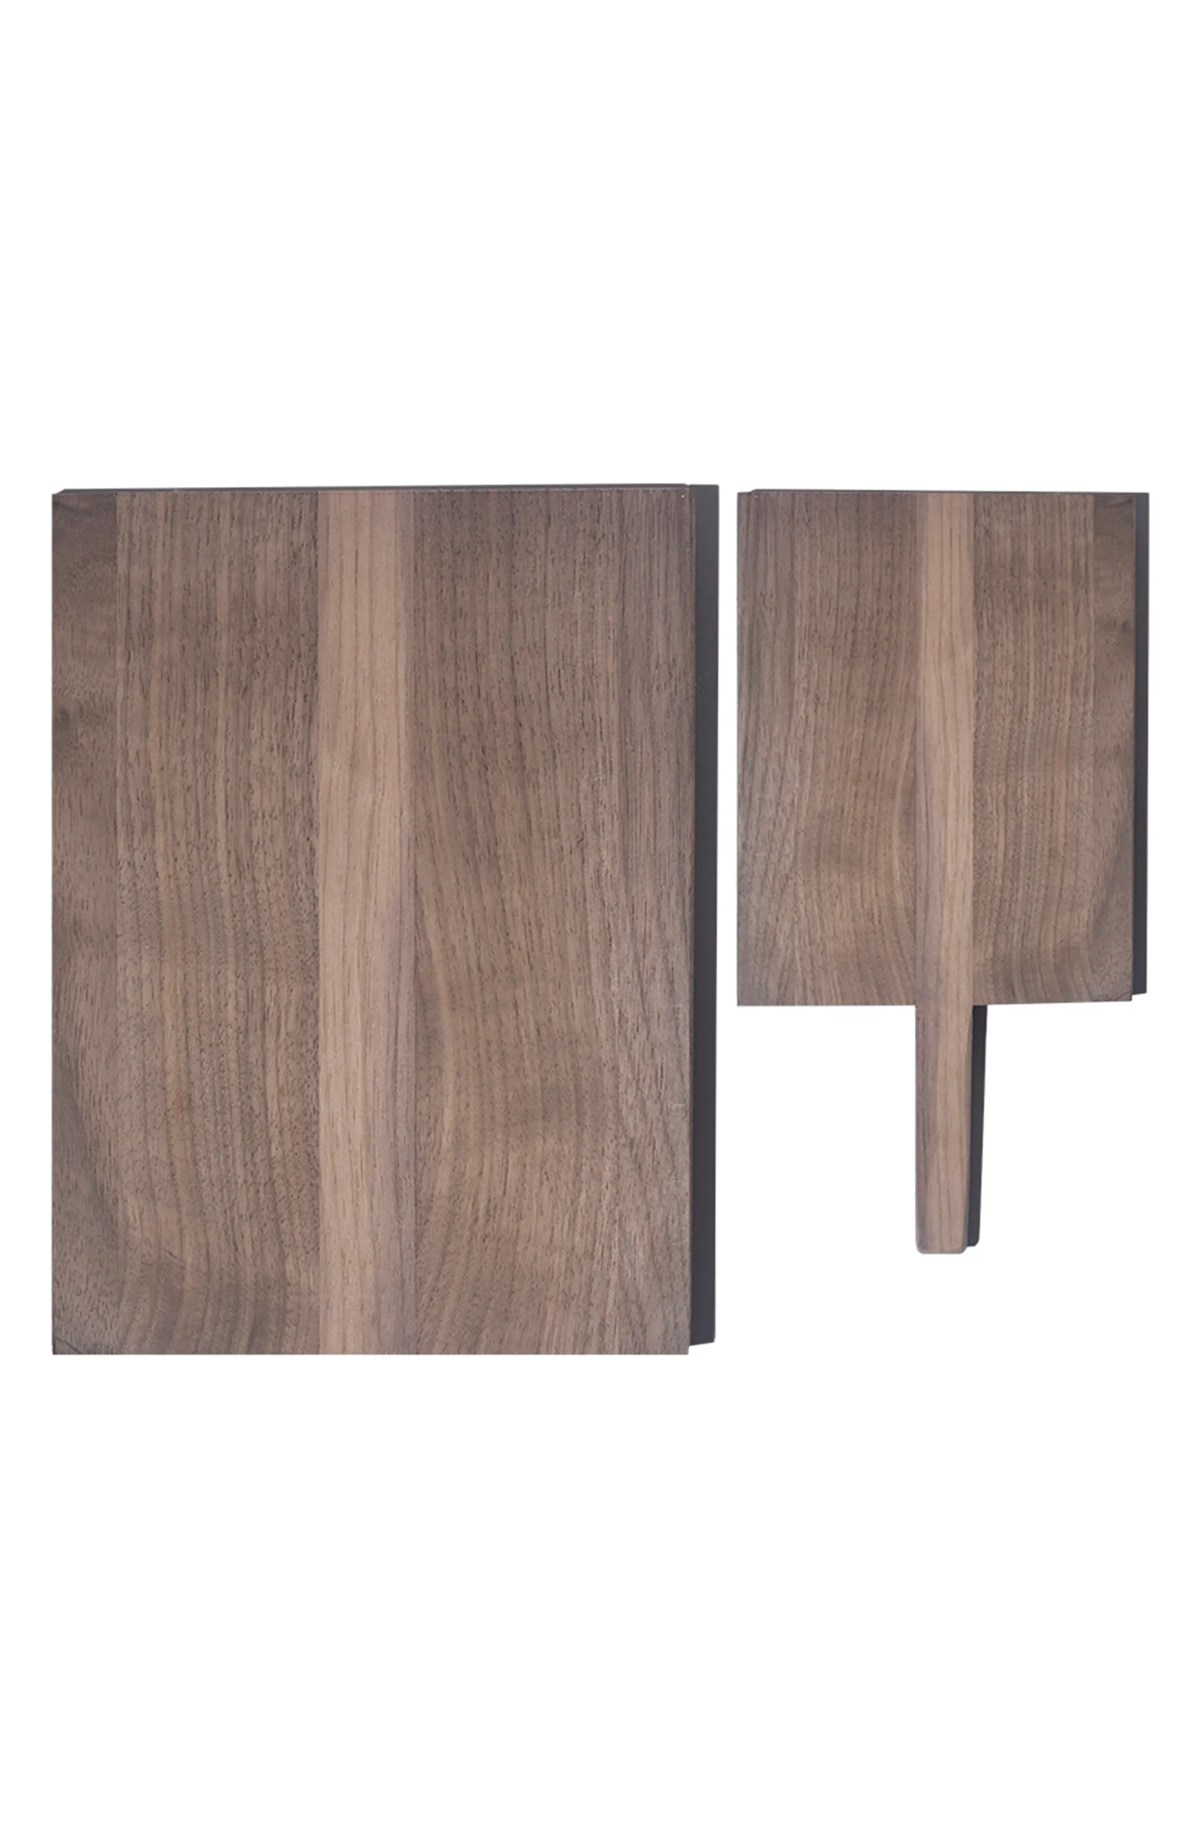 PACKAGE FREE Set of 2 Wood Cutting Boards, Main, color, DARK